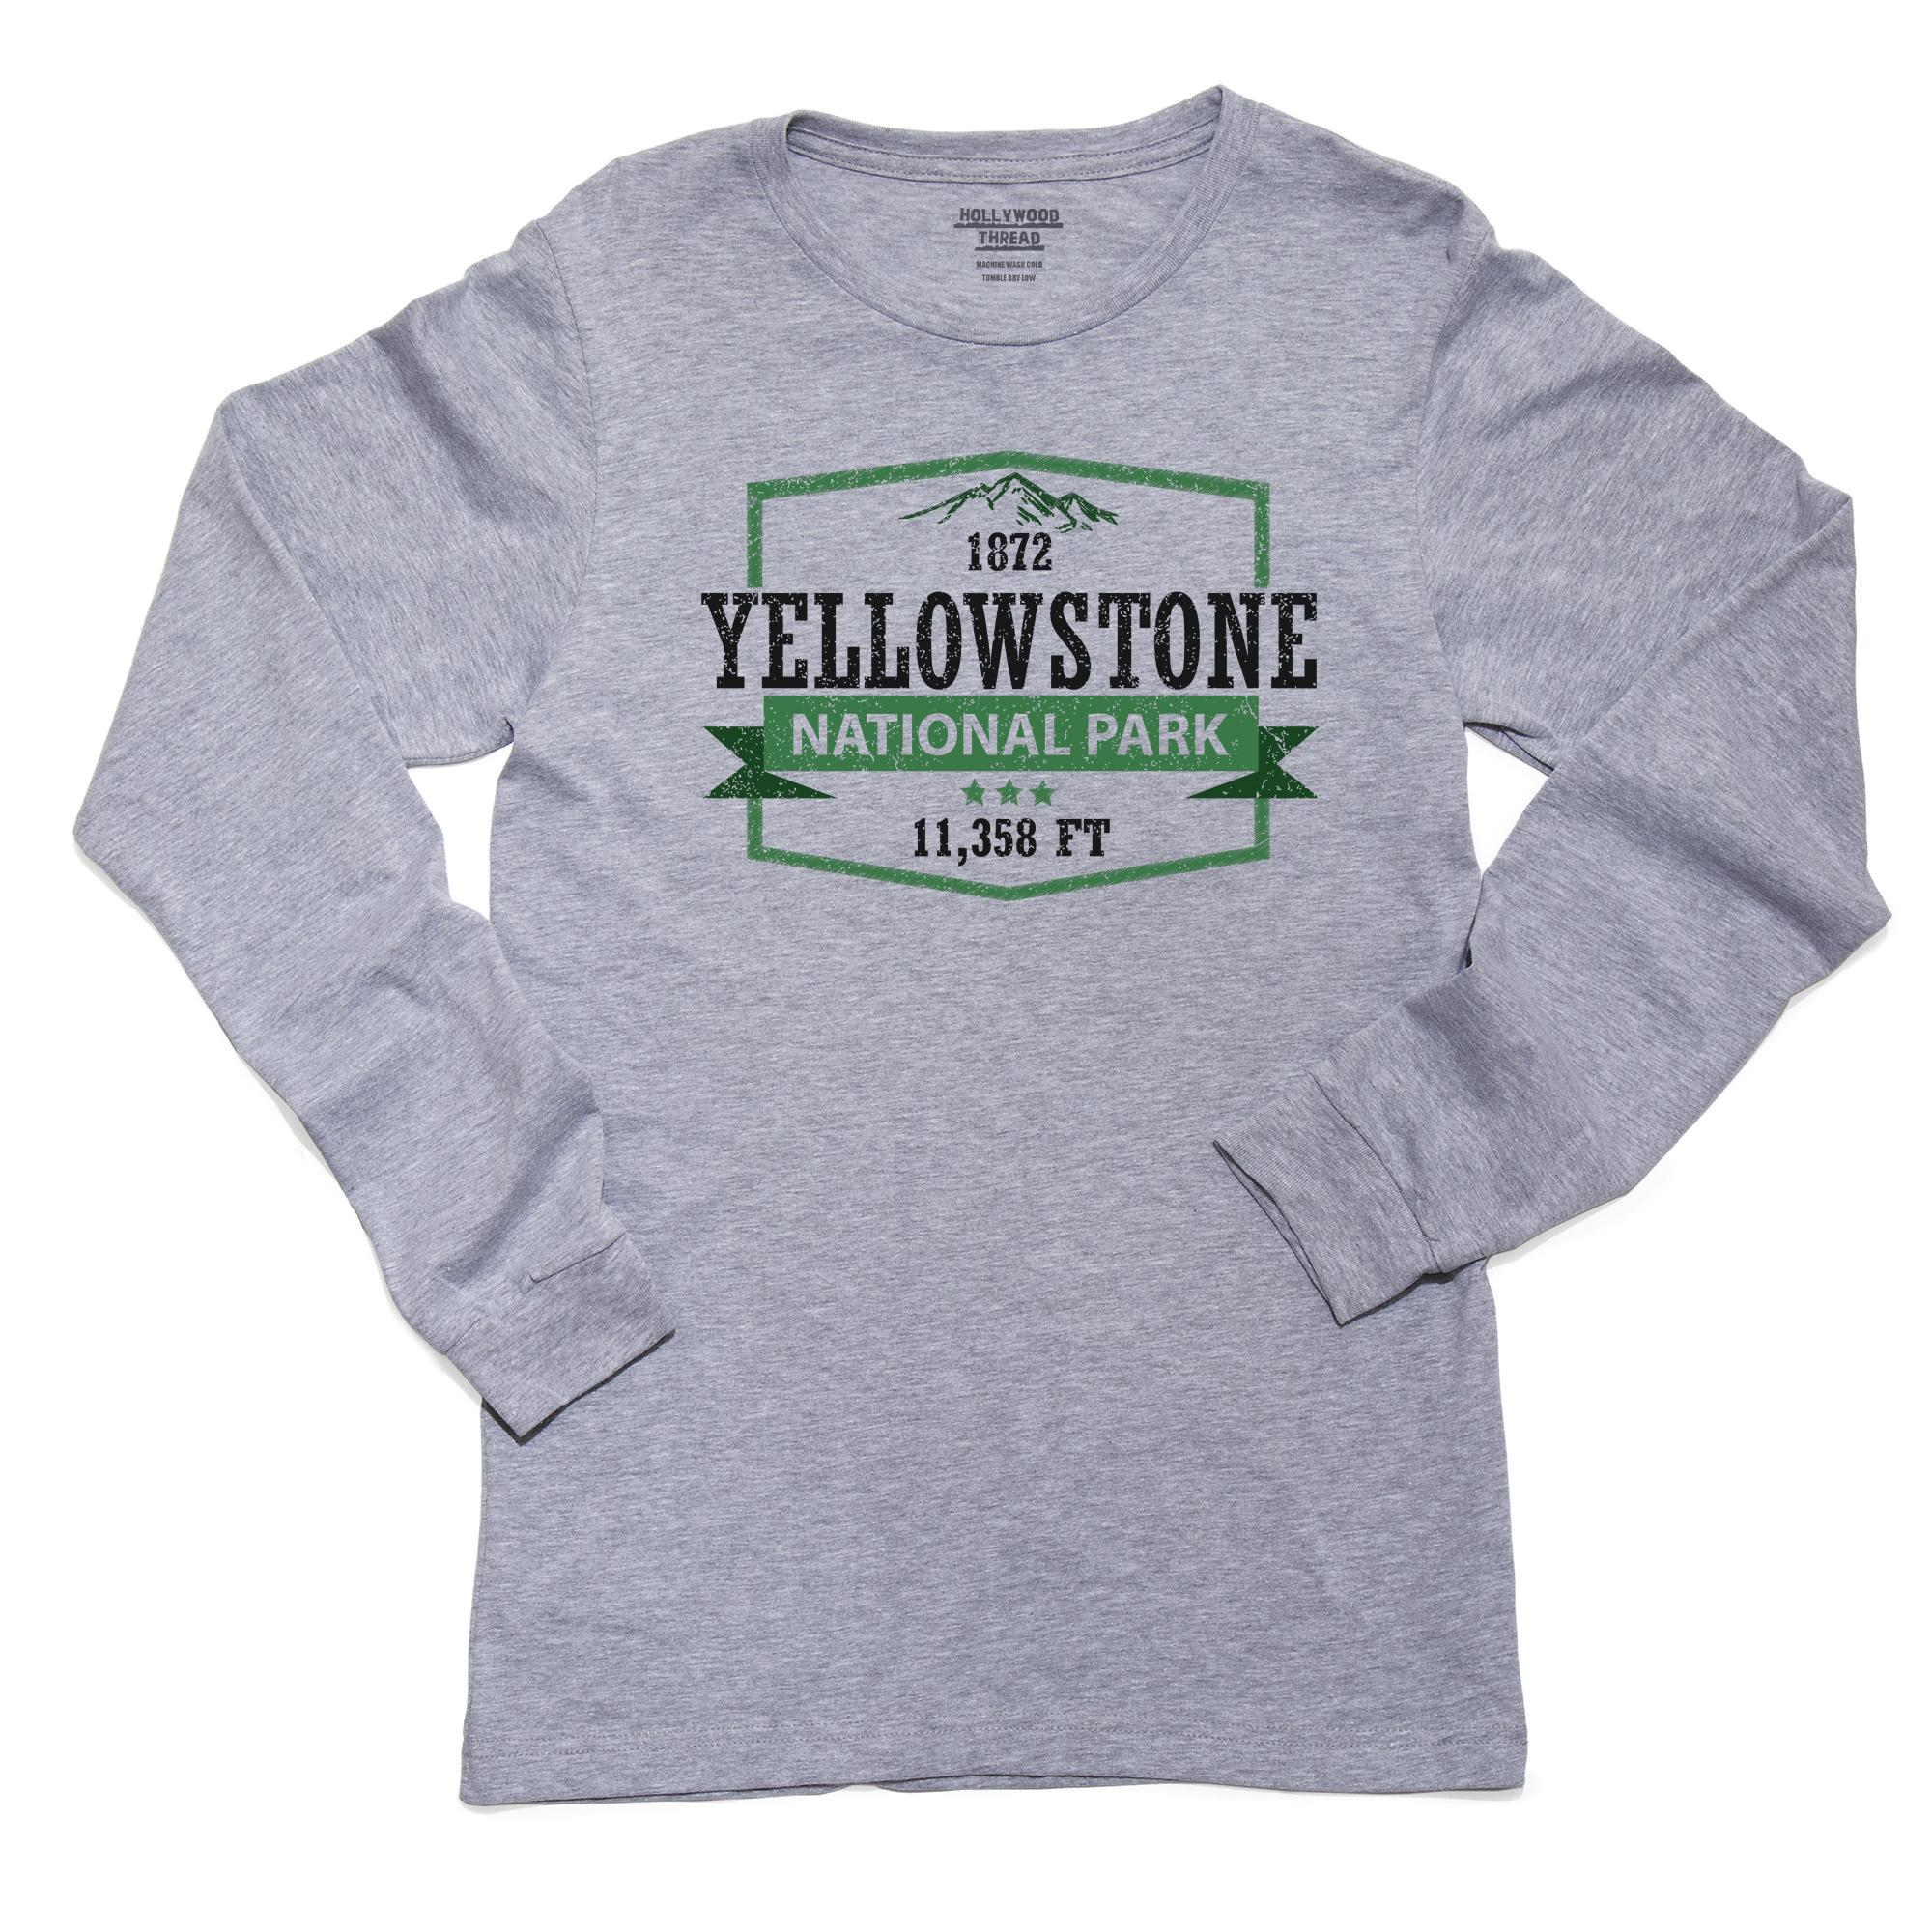 Yellowstone National Park Newborn Baby Long Sleeve Bodysuits Rompers Outfits